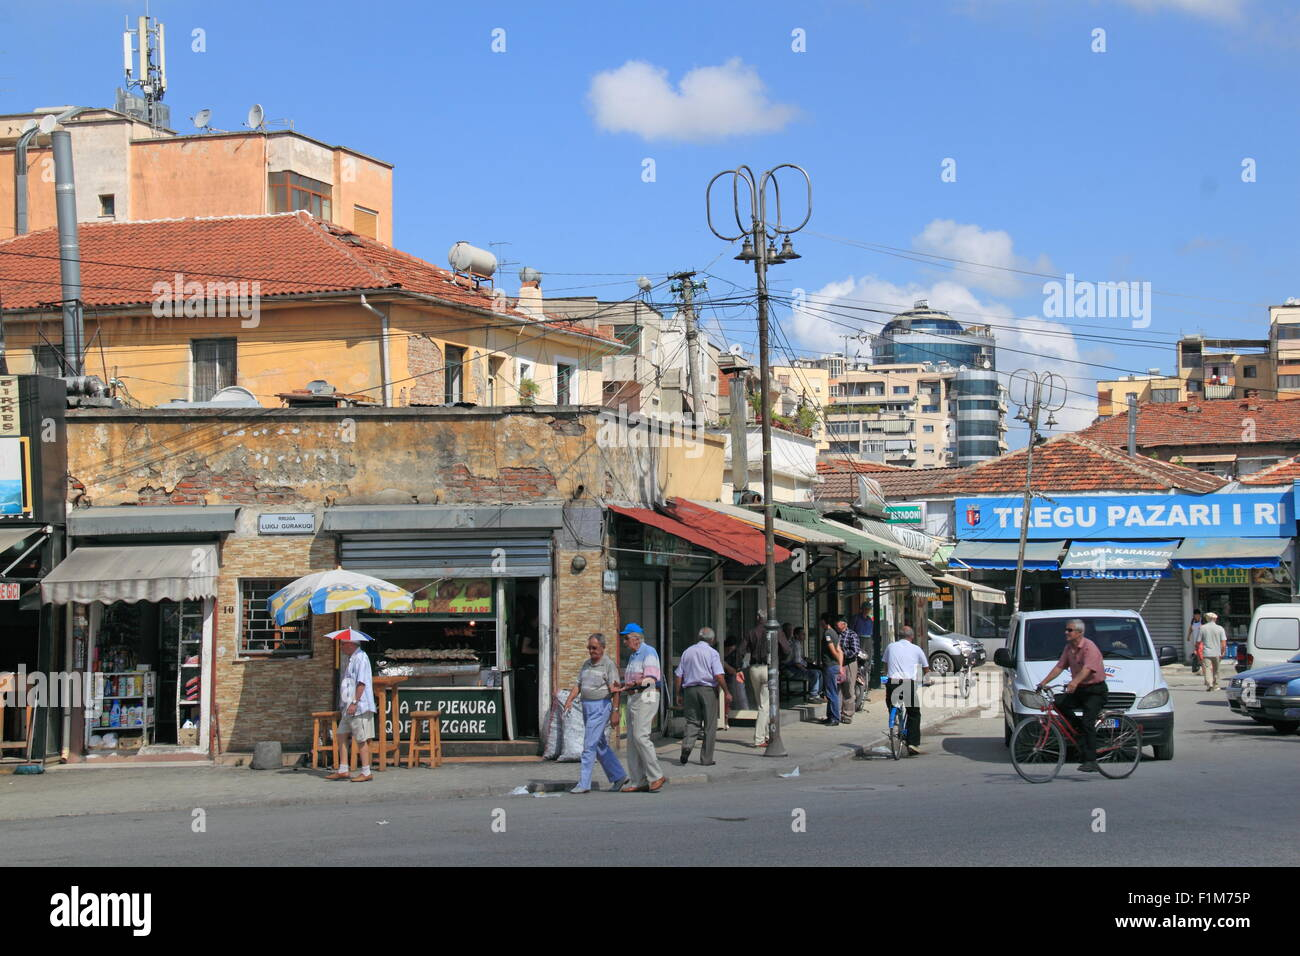 Sheshi Avni Rustemi, Tirana, Albania, Balkans, Europe Stock Photo